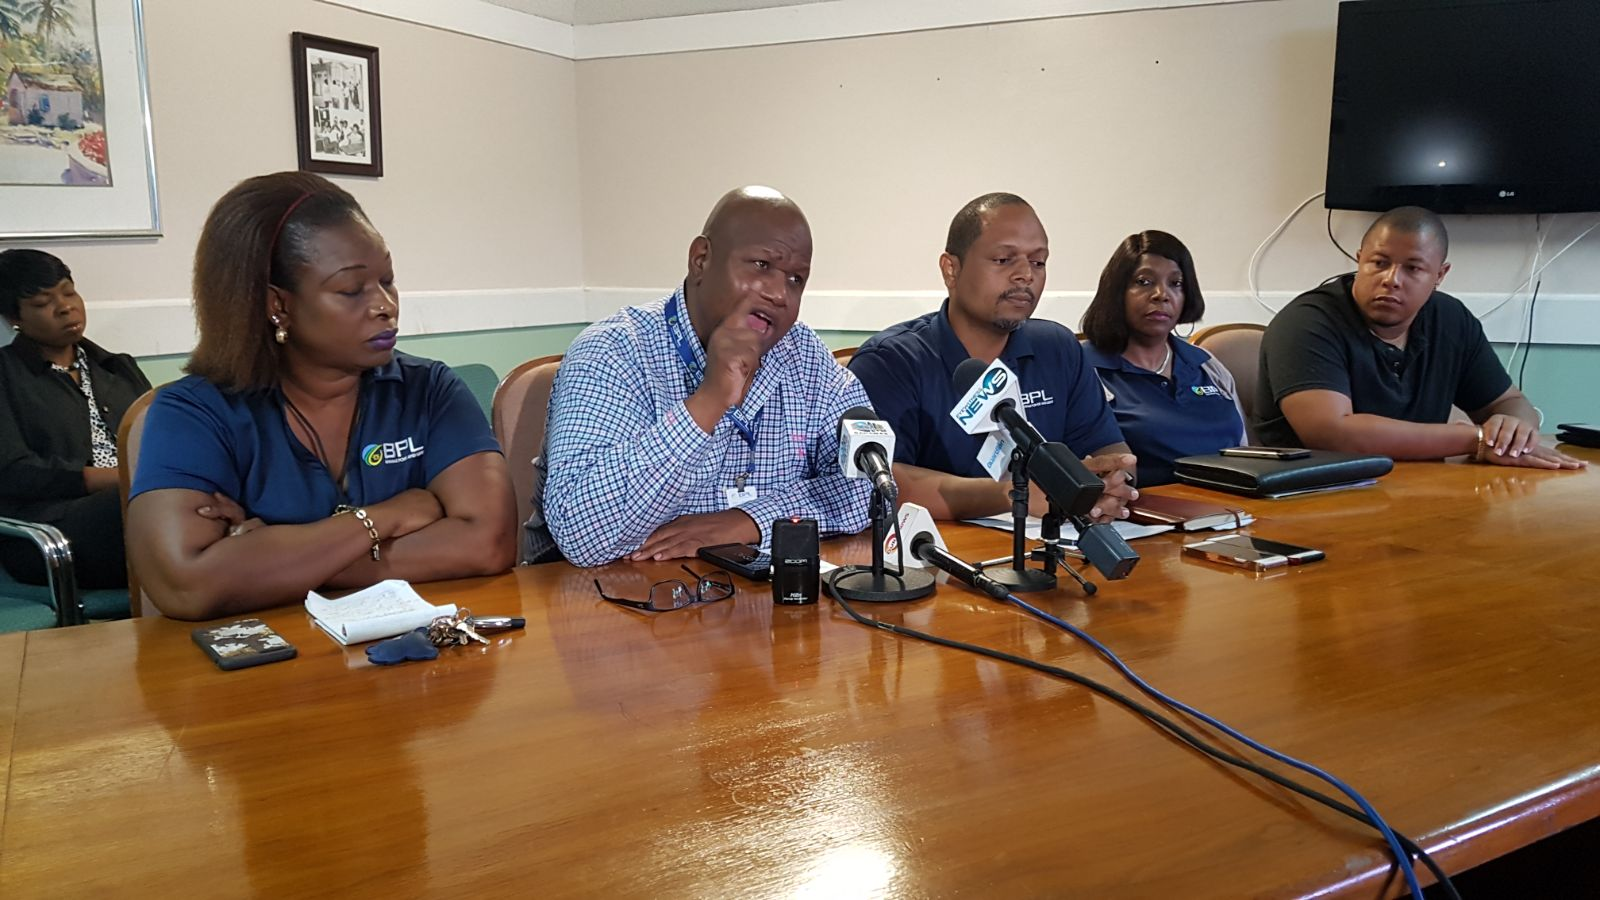 BPL unions at odds with board